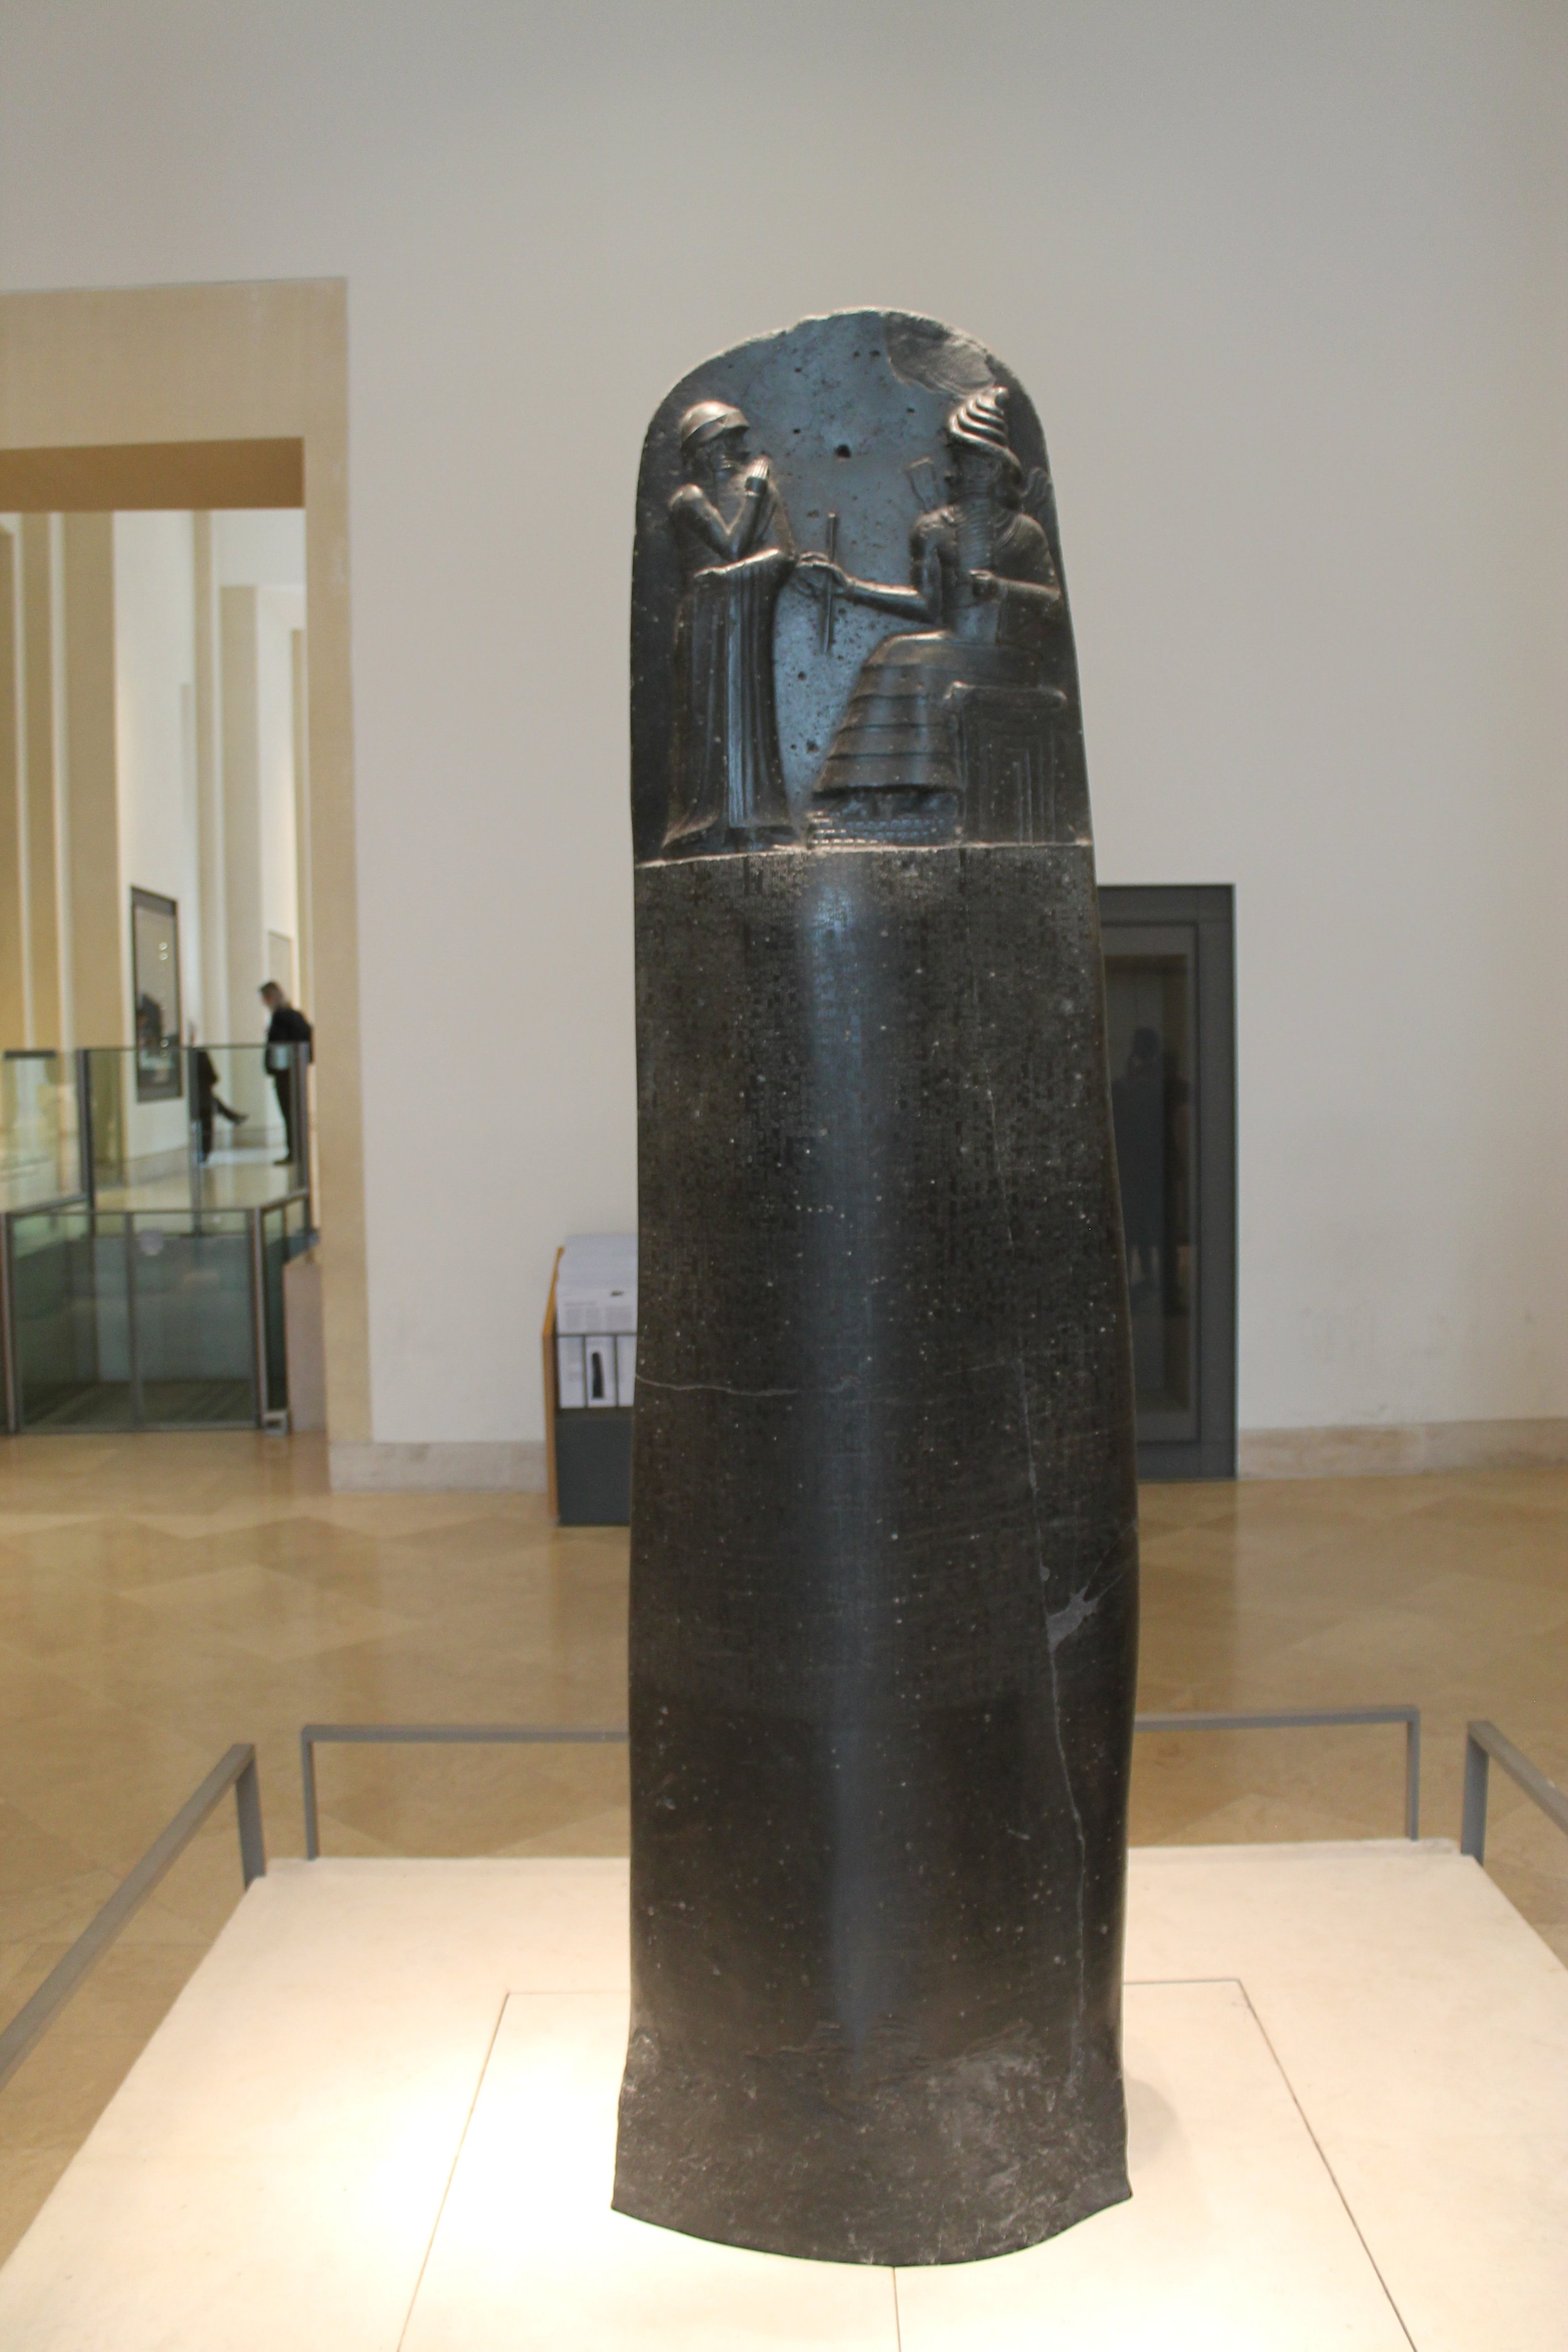 Code of Hammurabi, dating to 1754 BC, constructed under the orders of the 6th Babylonian king Hammurabi. It is 2.25 m (7.4 ft) tall contains text written in the Akkadian language using cuneiform script carved into the diorite stele. It consists of 282 laws (credit: Photo by K. F. Long, located in Louvre, Paris).